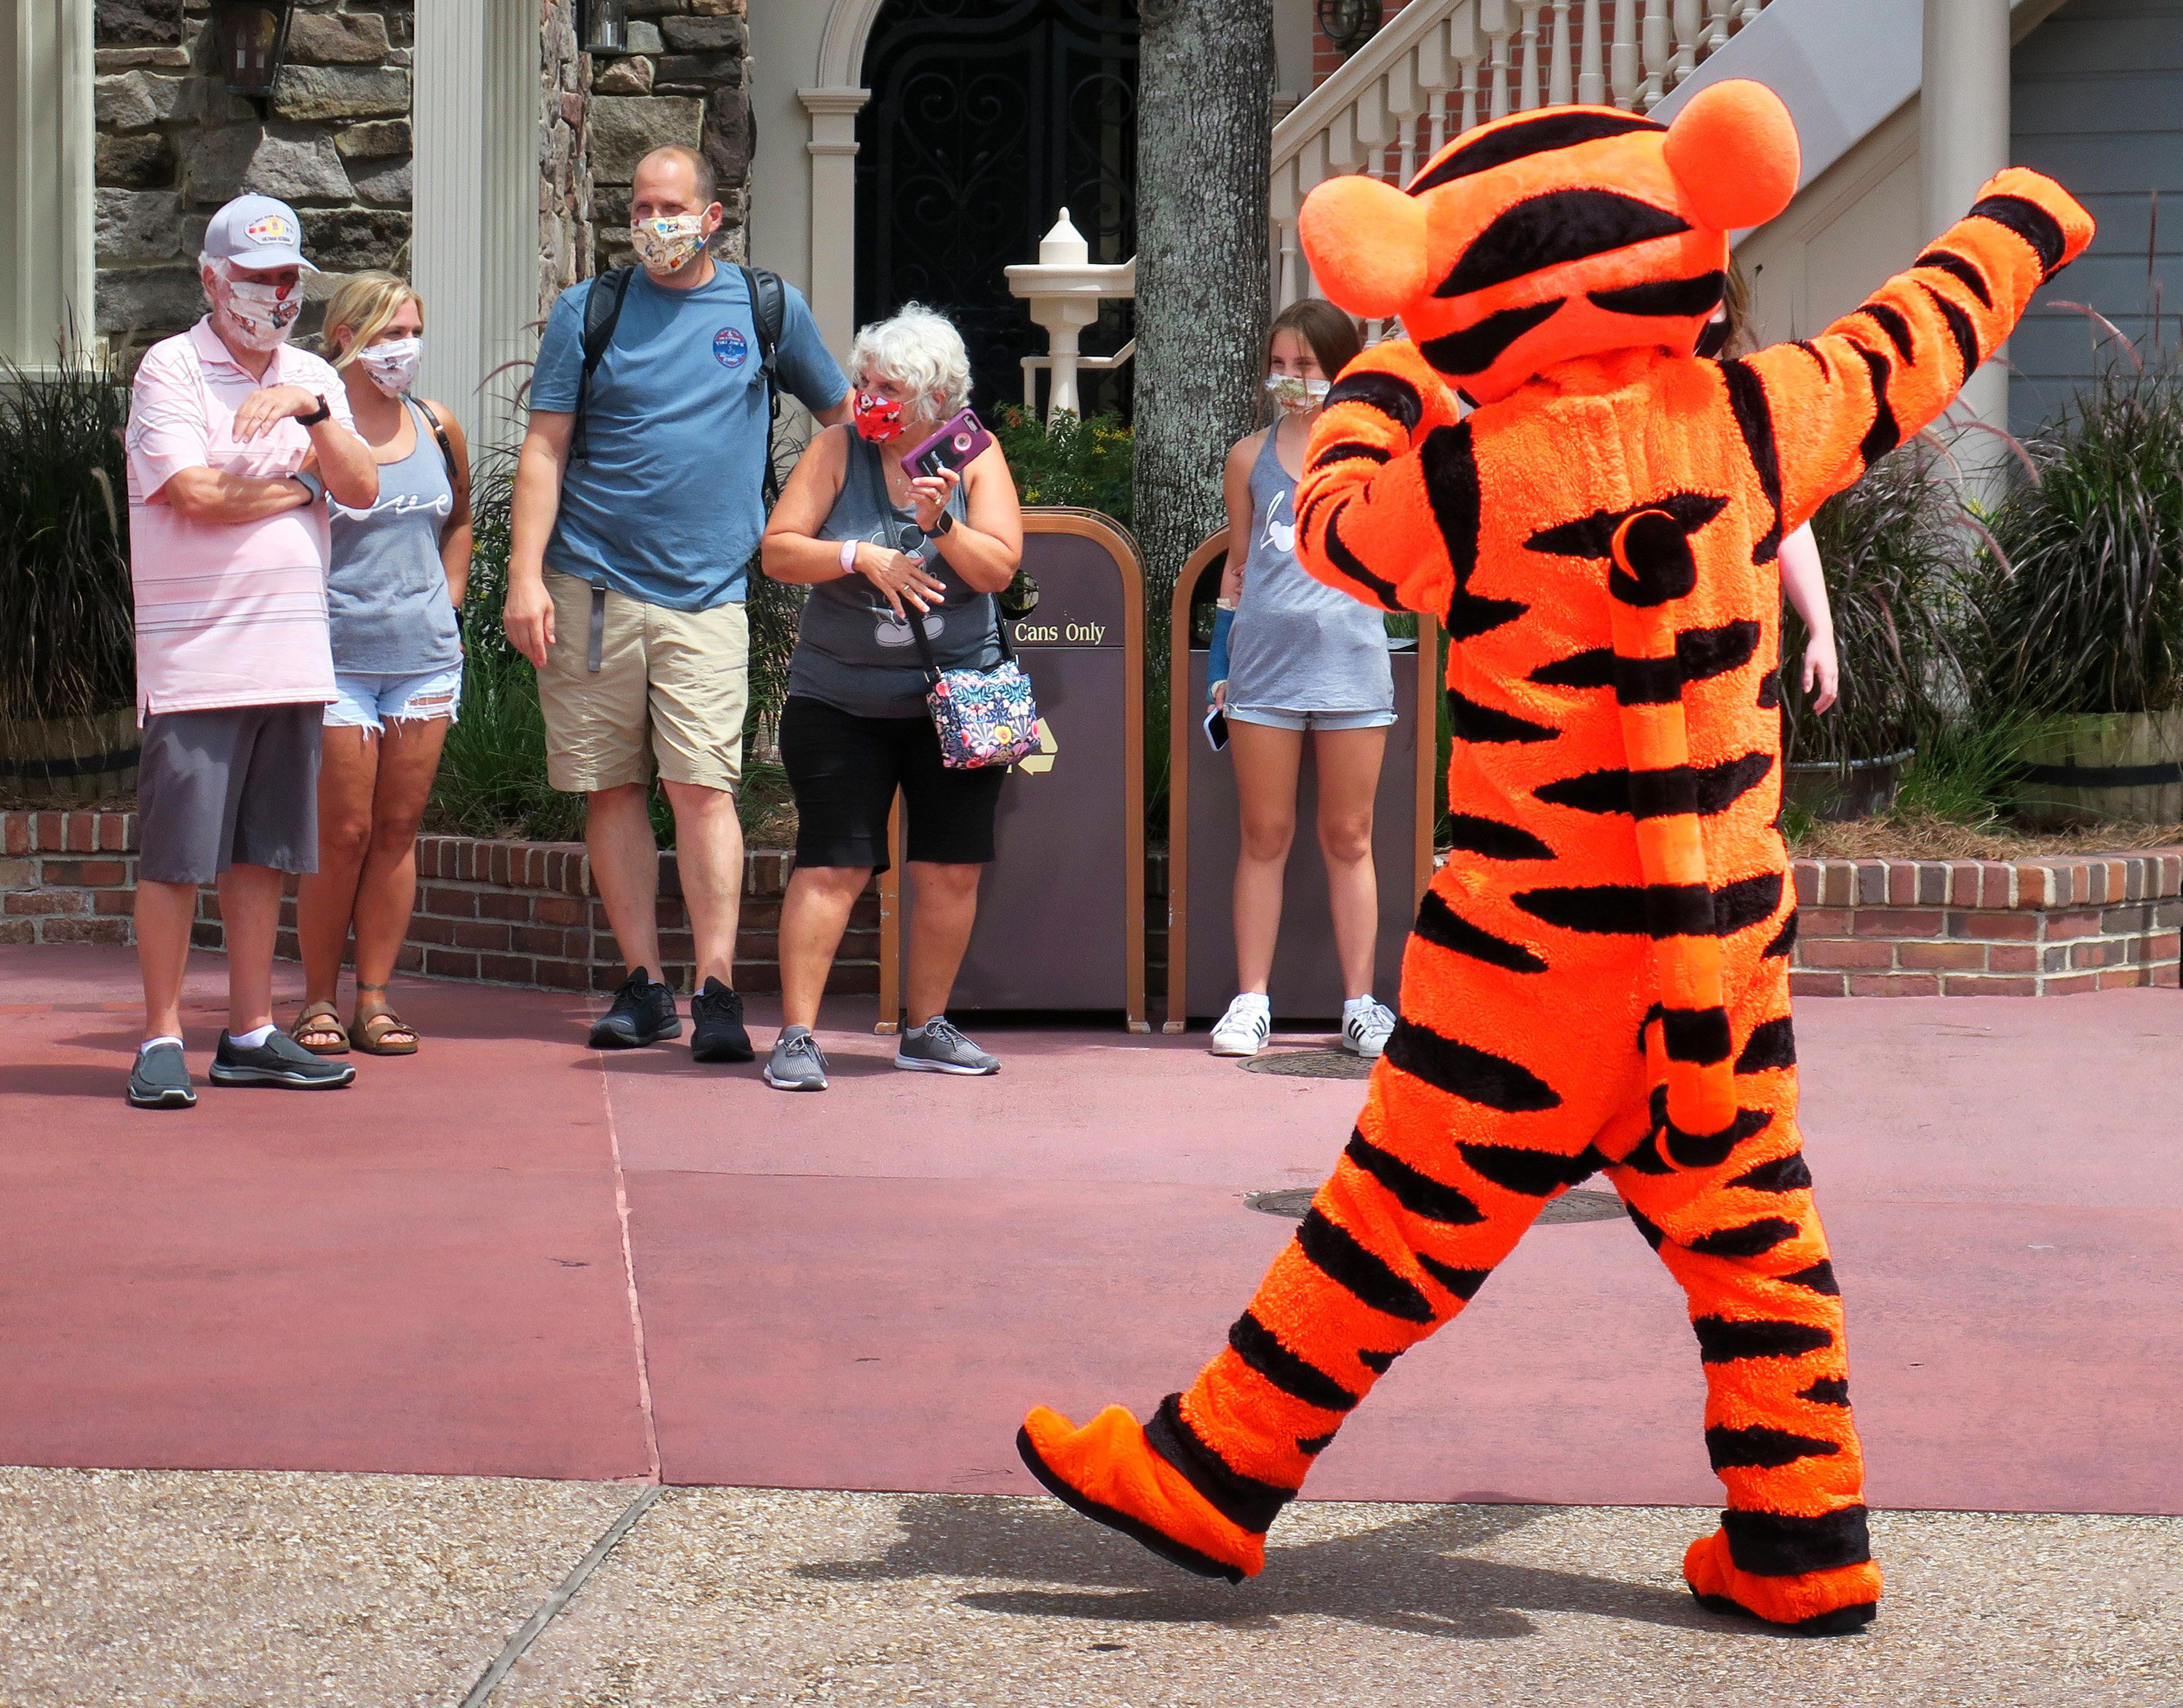 A family wearing masks watches Tigger walk by